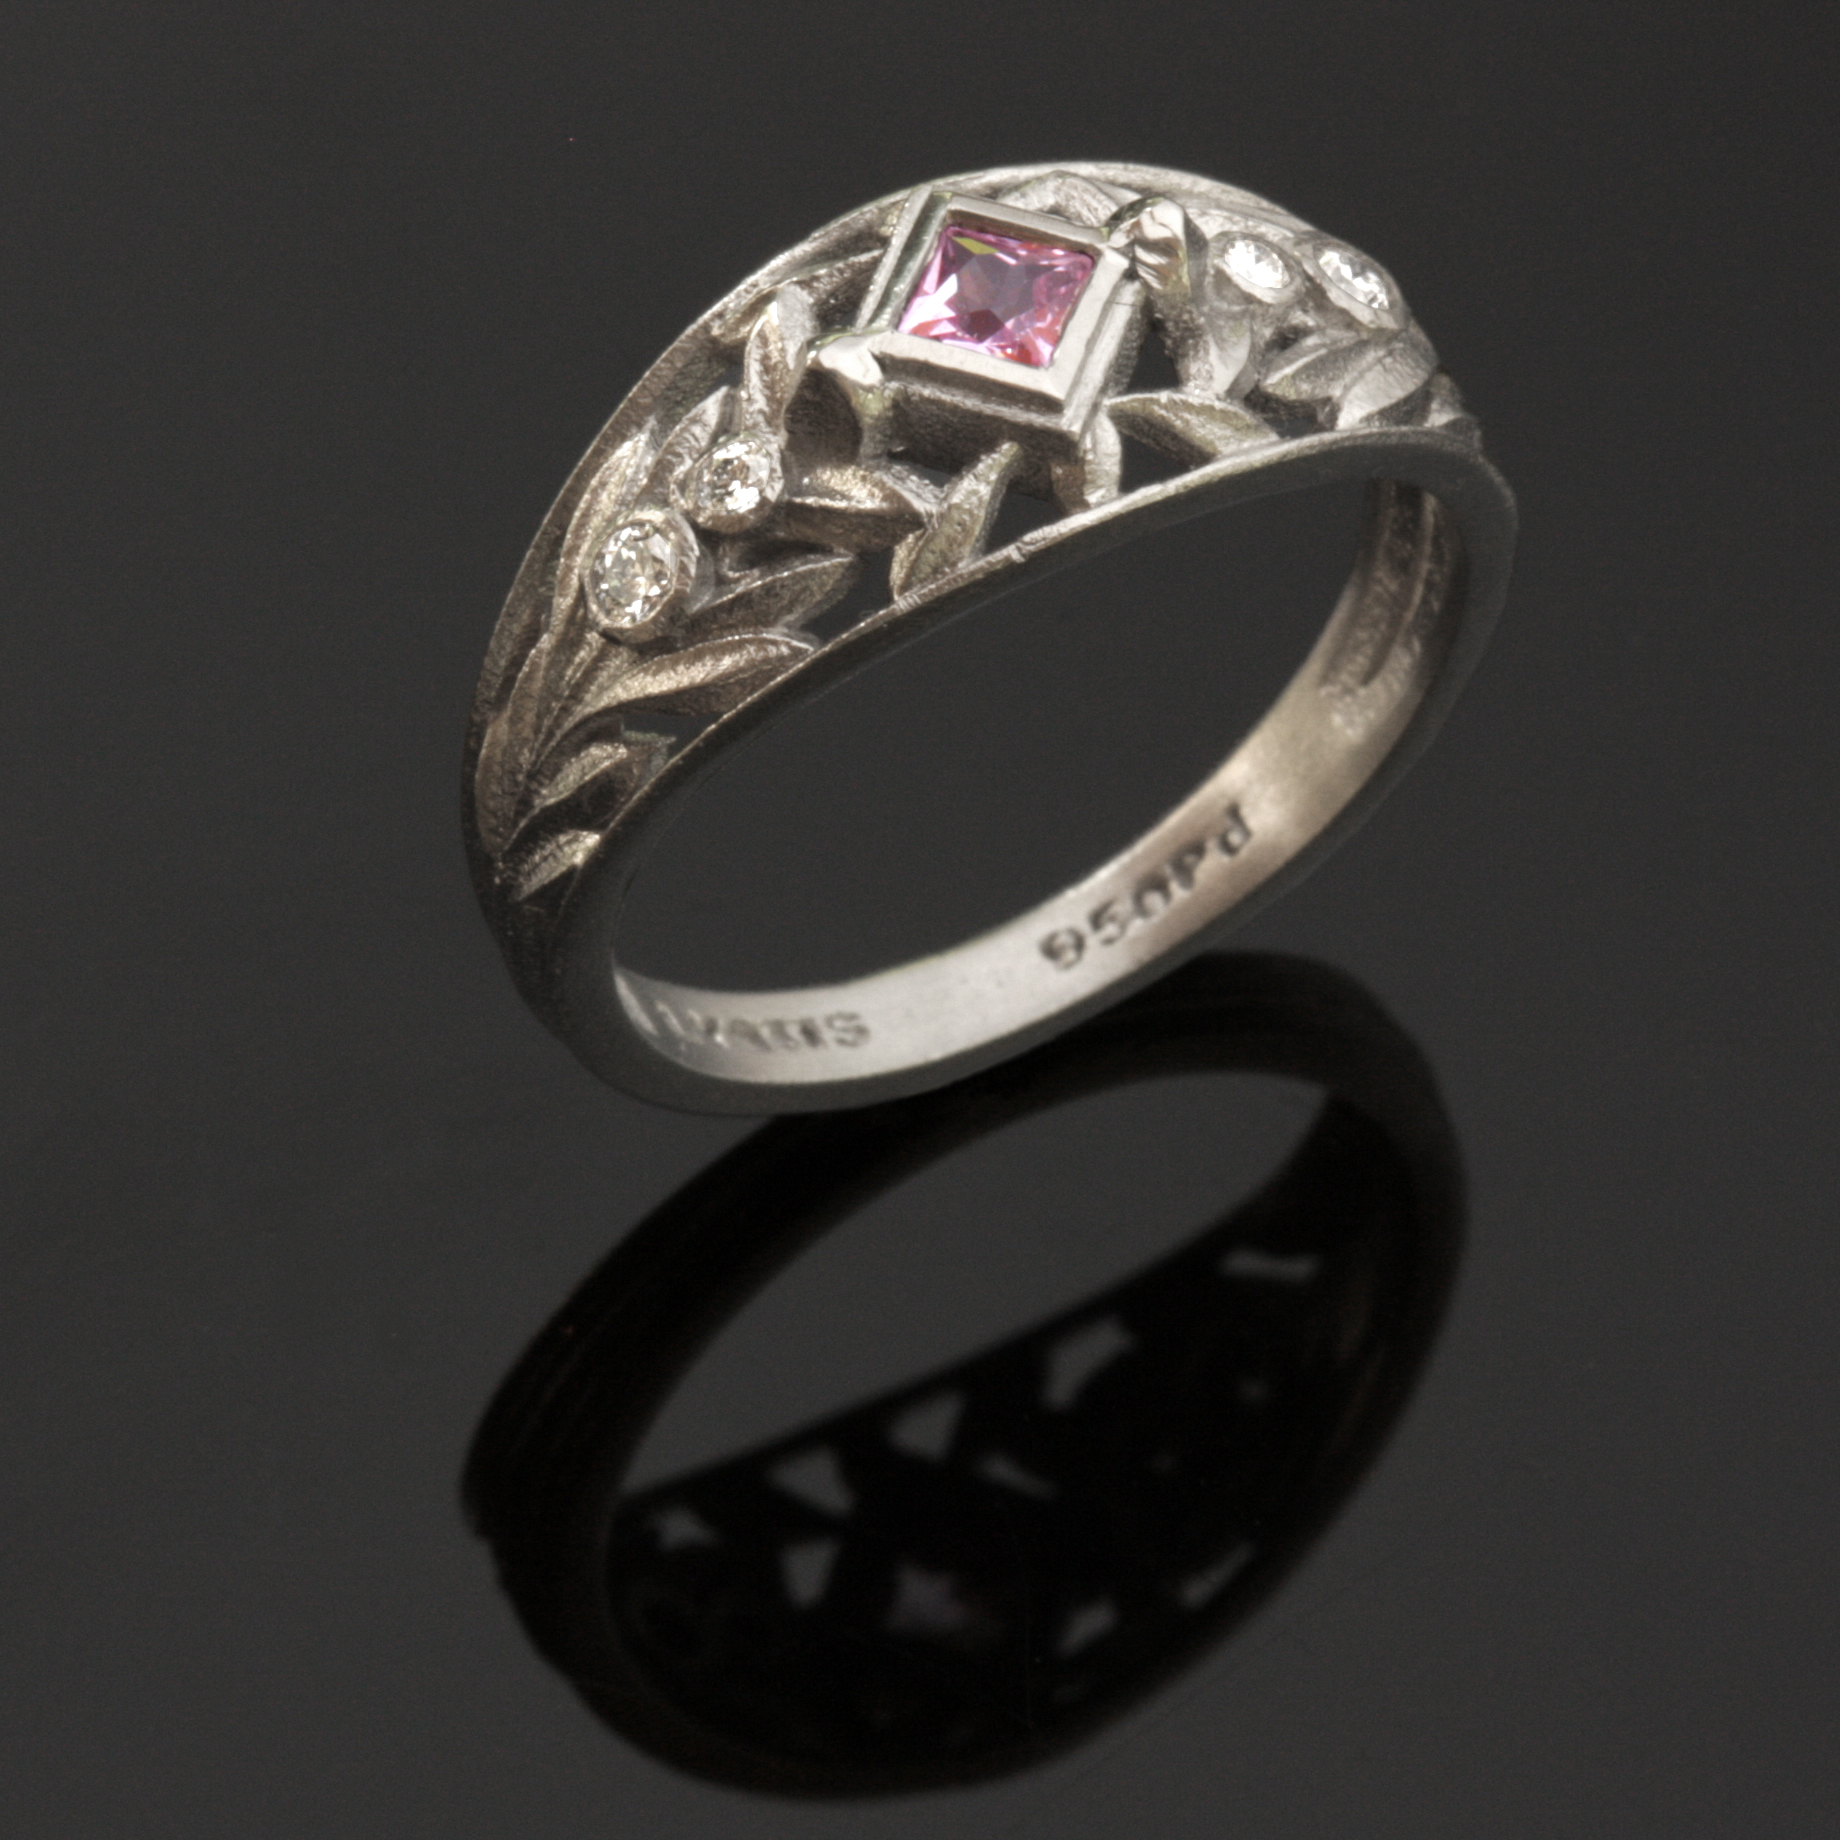 Acanthus Ring, 7mm wide